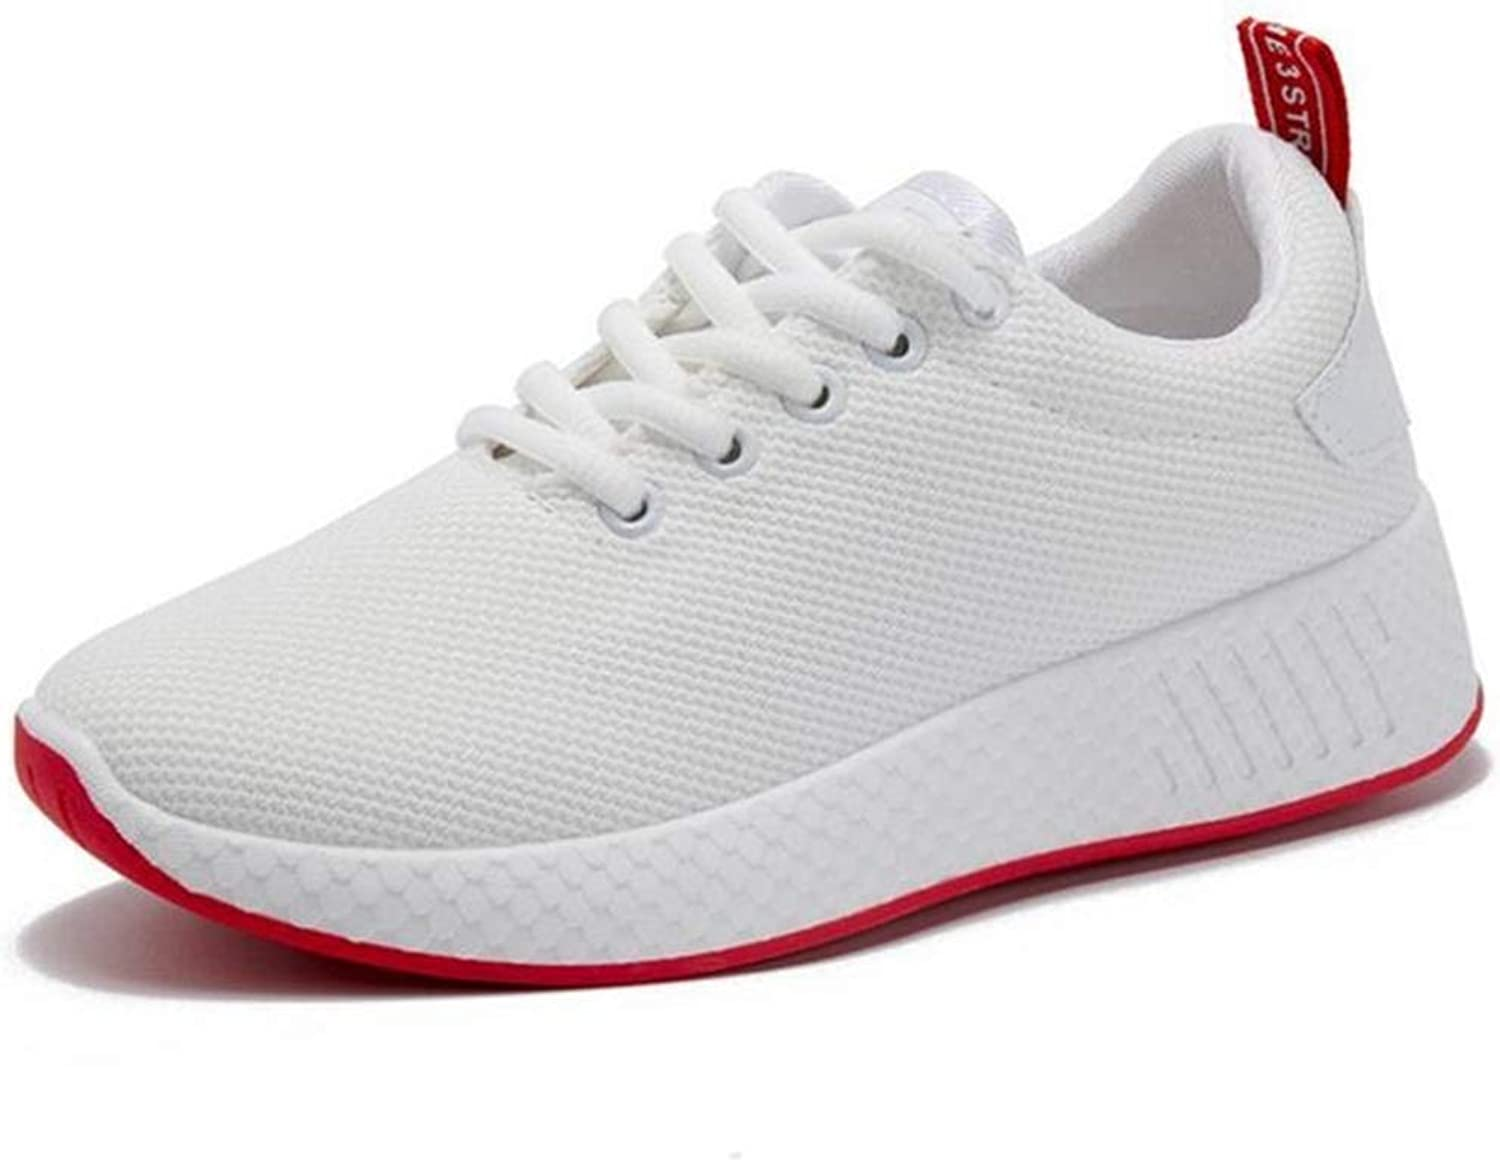 The New Casual Air Mesh Female shoes for Women Basket Spring Designer Wedges White Platform Sneakers White 7 M US